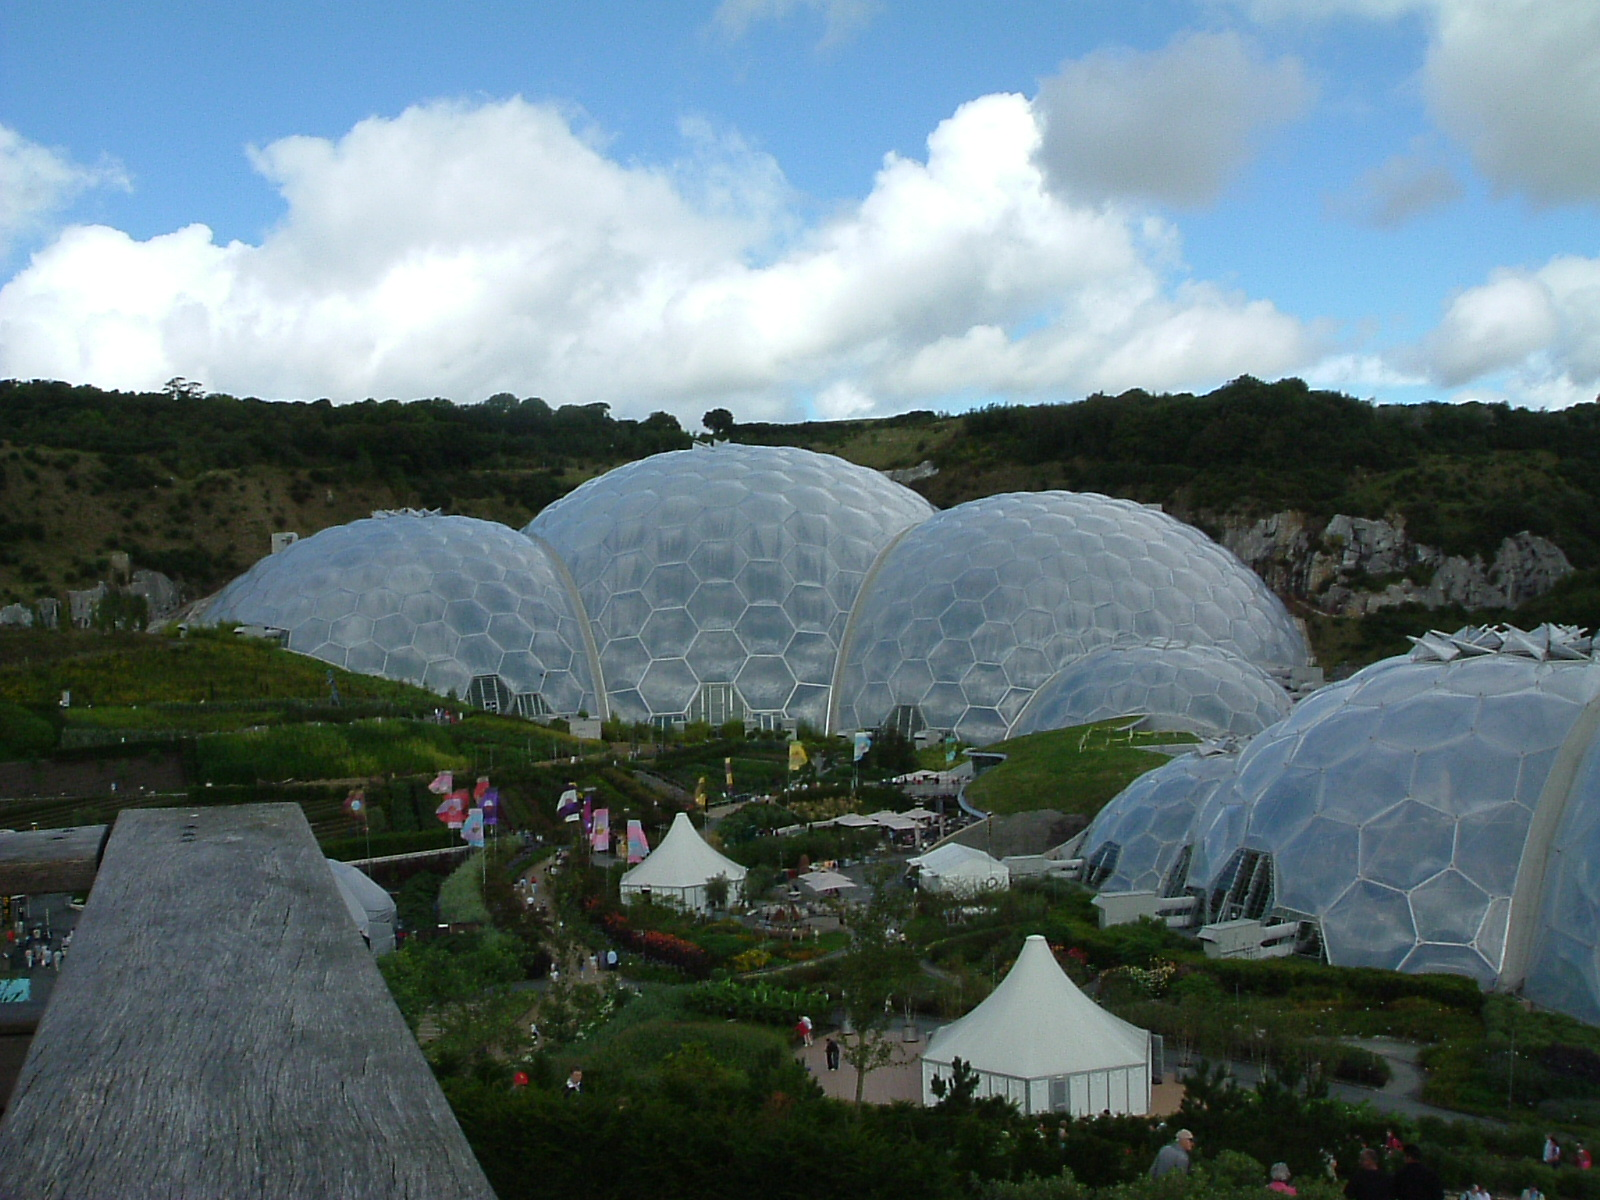 FileImage Eden Project dome and gardenjpg Wikimedia Commons